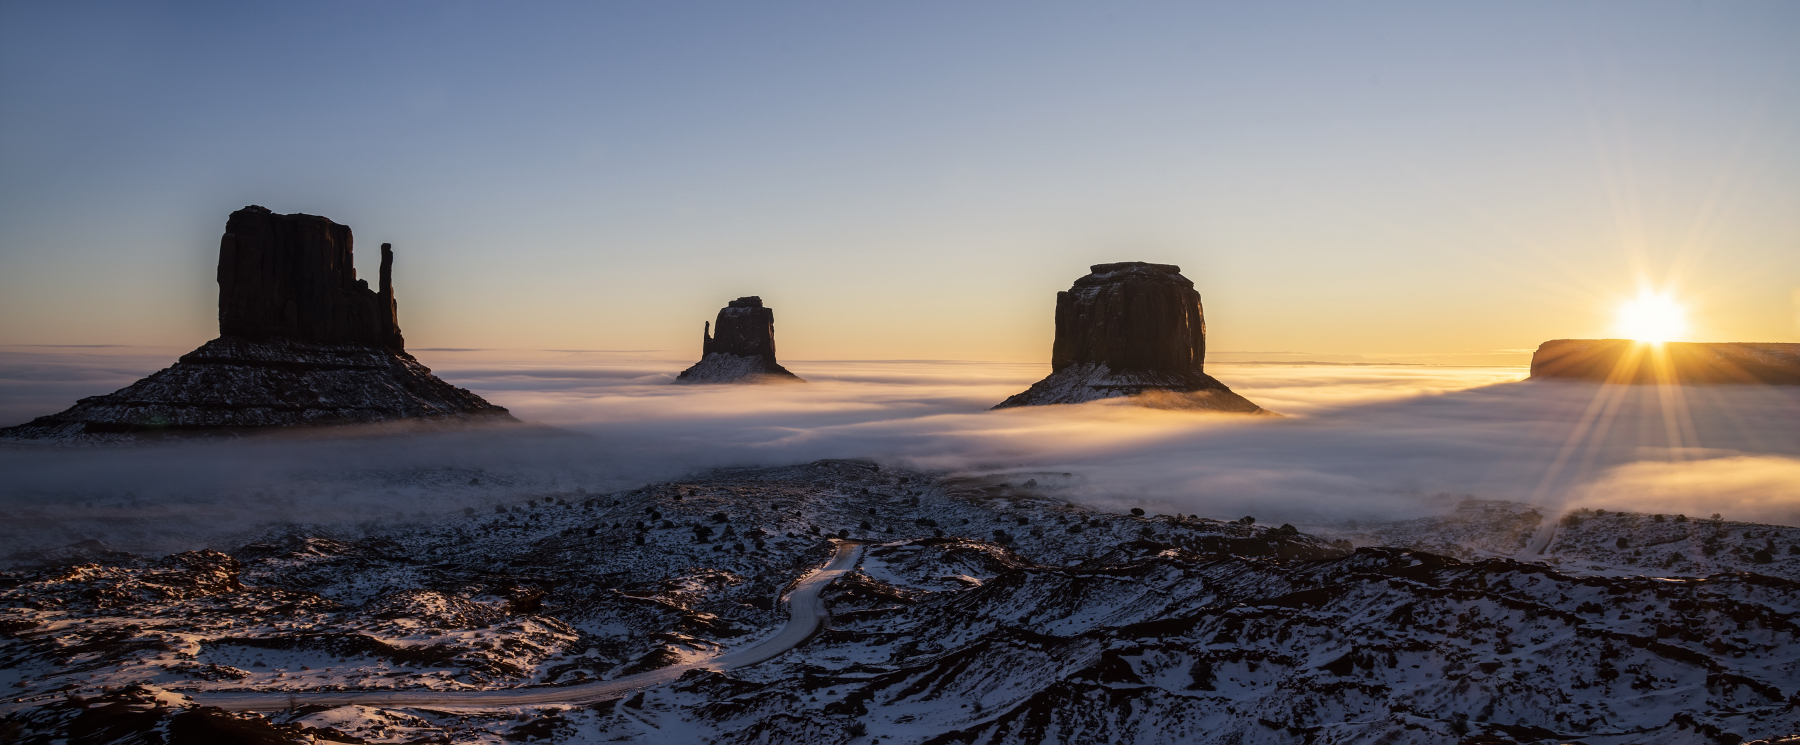 Majestic Monument Valley by Alisa Zuniga